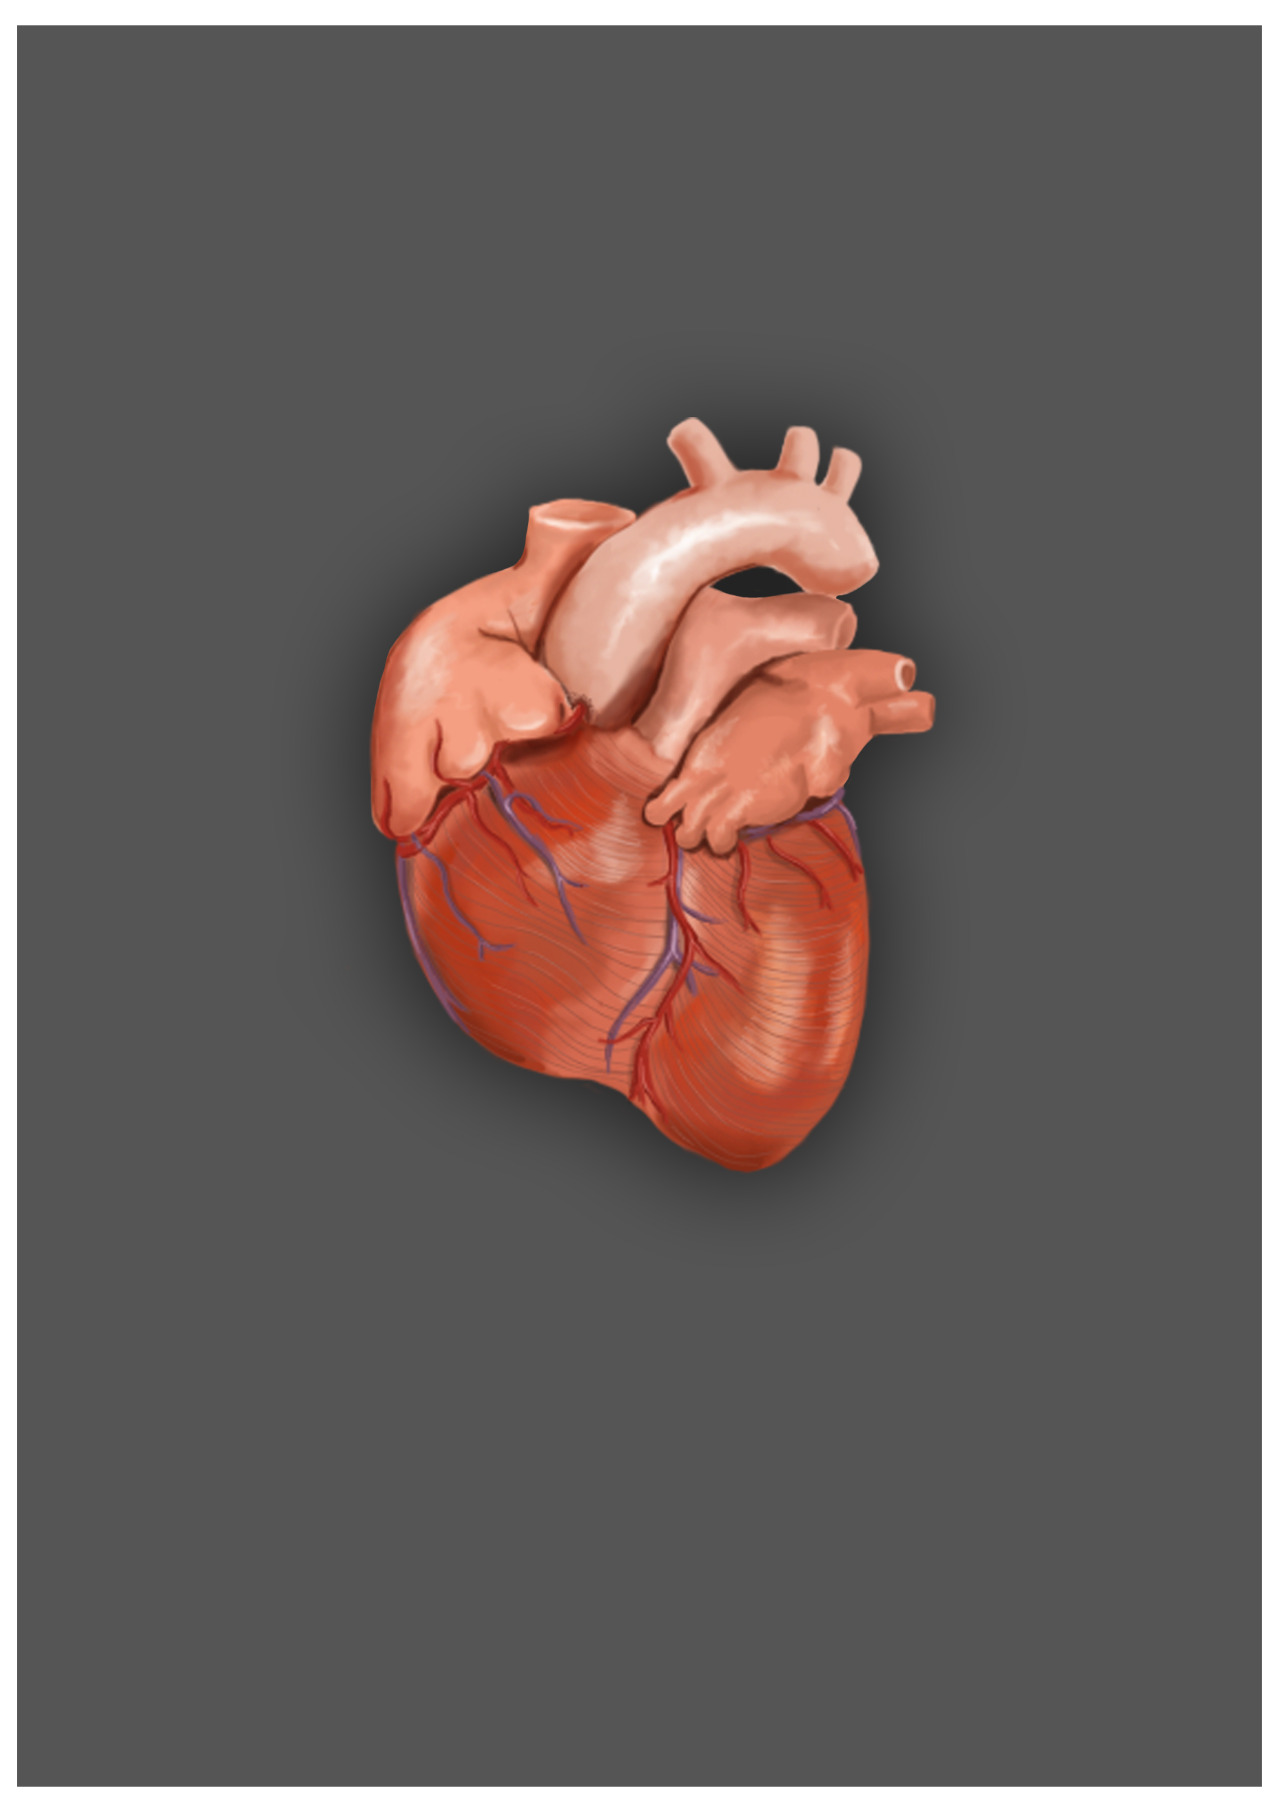 Another painting for my anatomy app :)